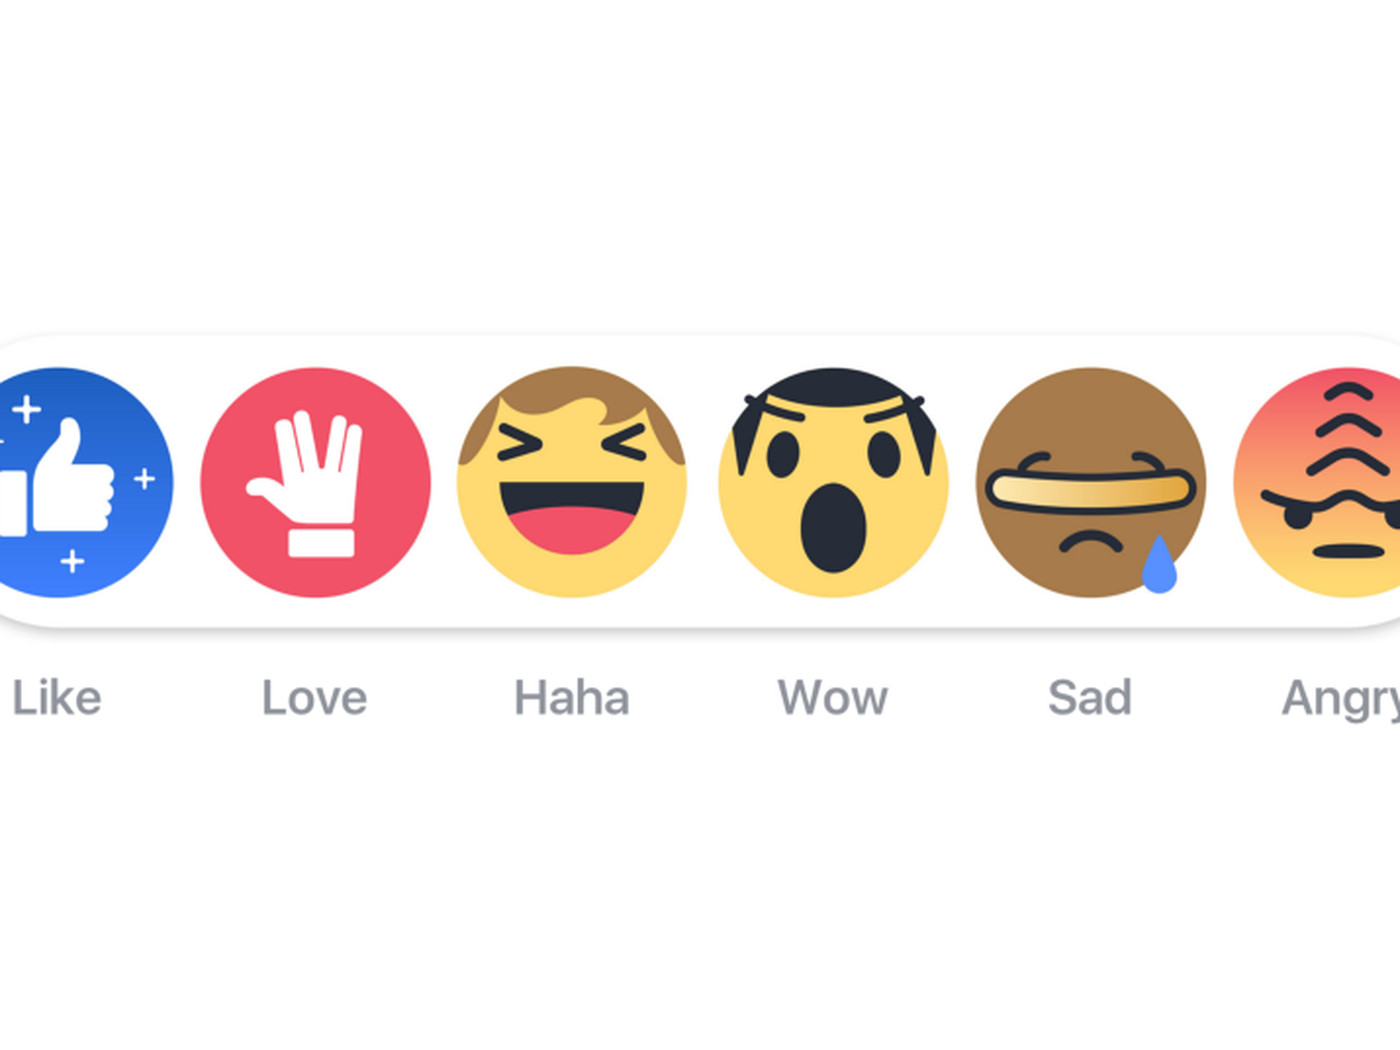 Facebook Reactions Png 94 images in Collection Page 1 1400x1050